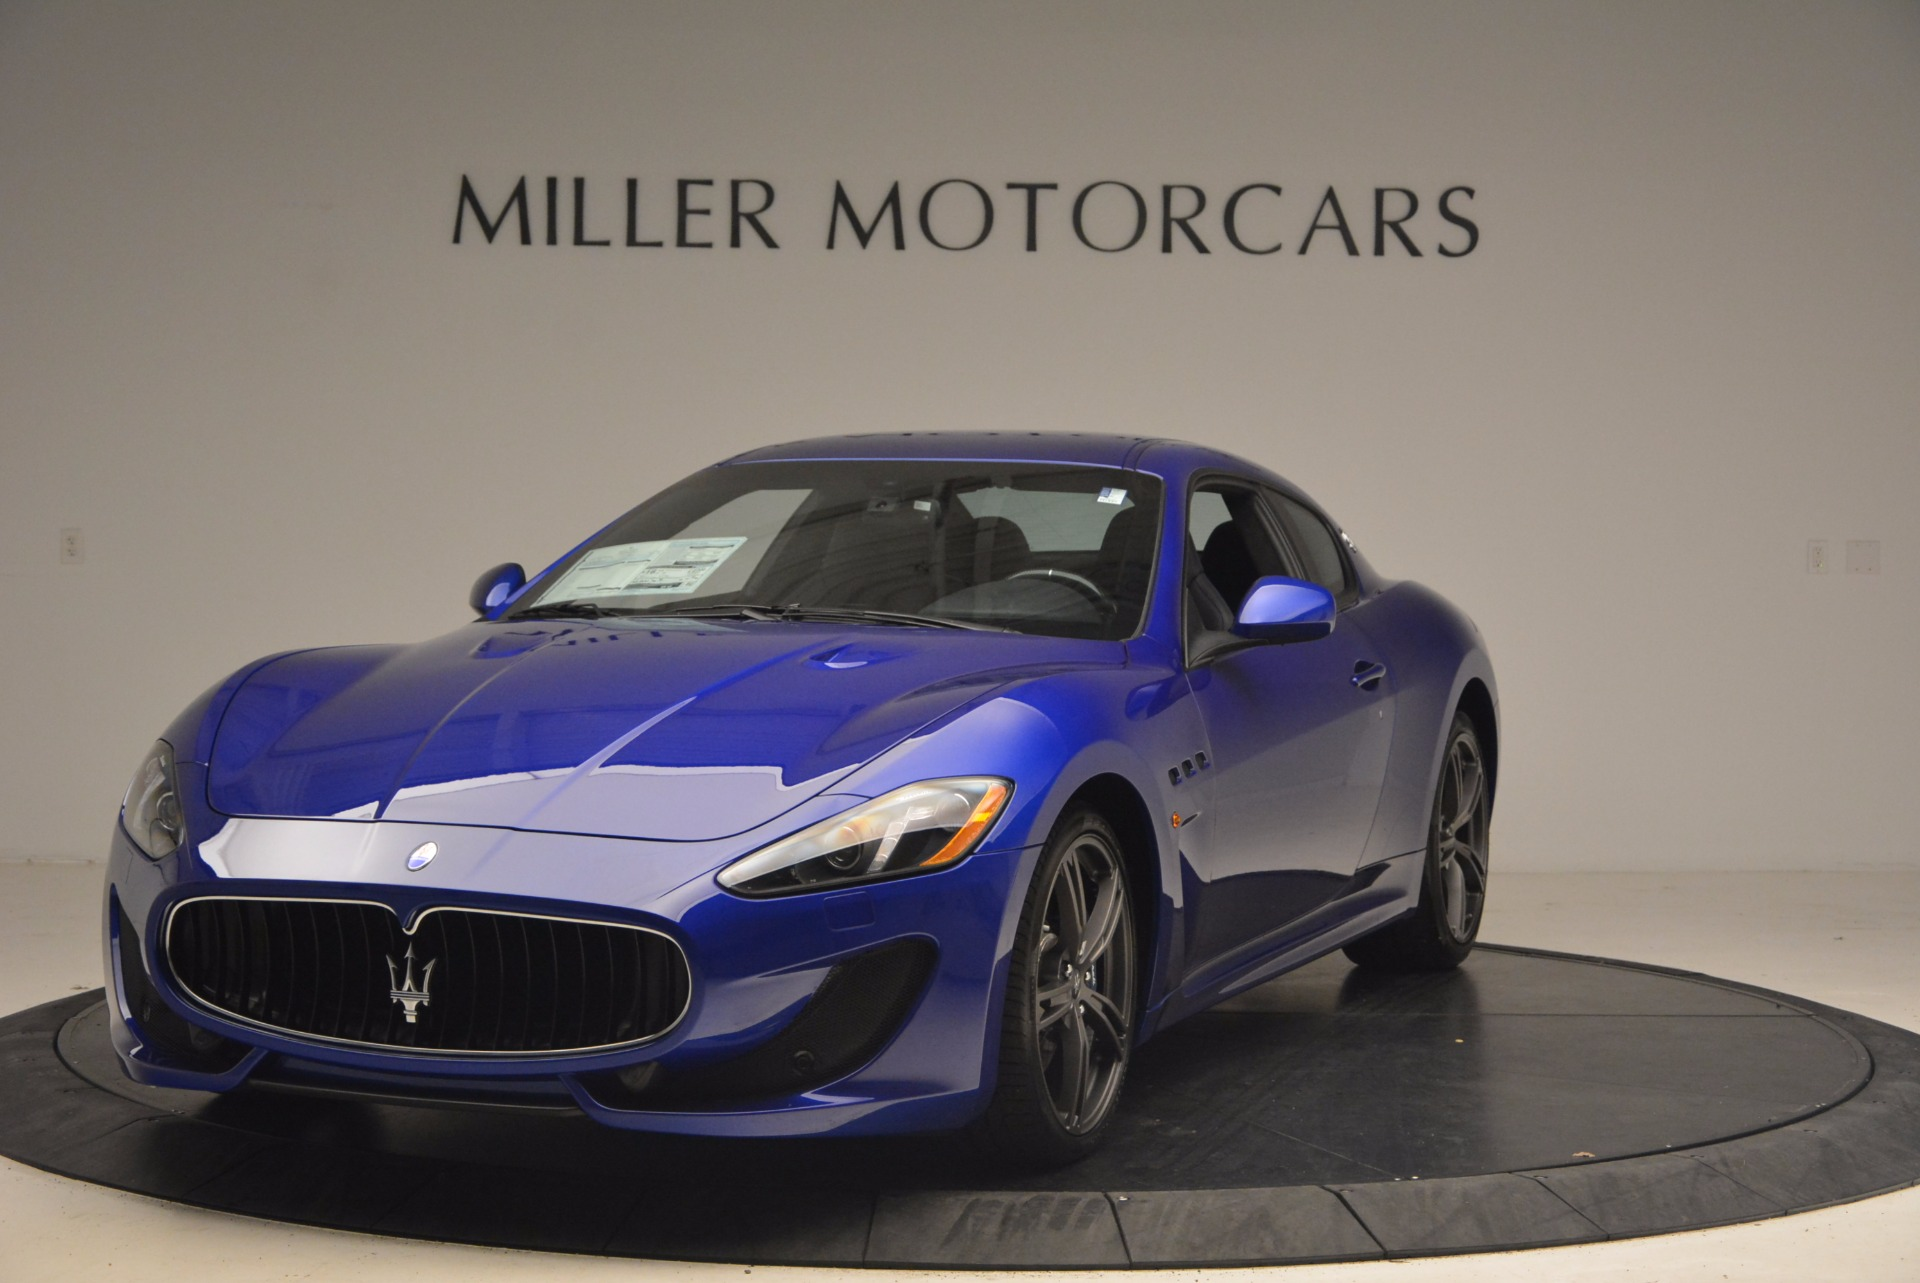 New 2017 Maserati GranTurismo Sport Coupe Special Edition for sale Sold at Rolls-Royce Motor Cars Greenwich in Greenwich CT 06830 1